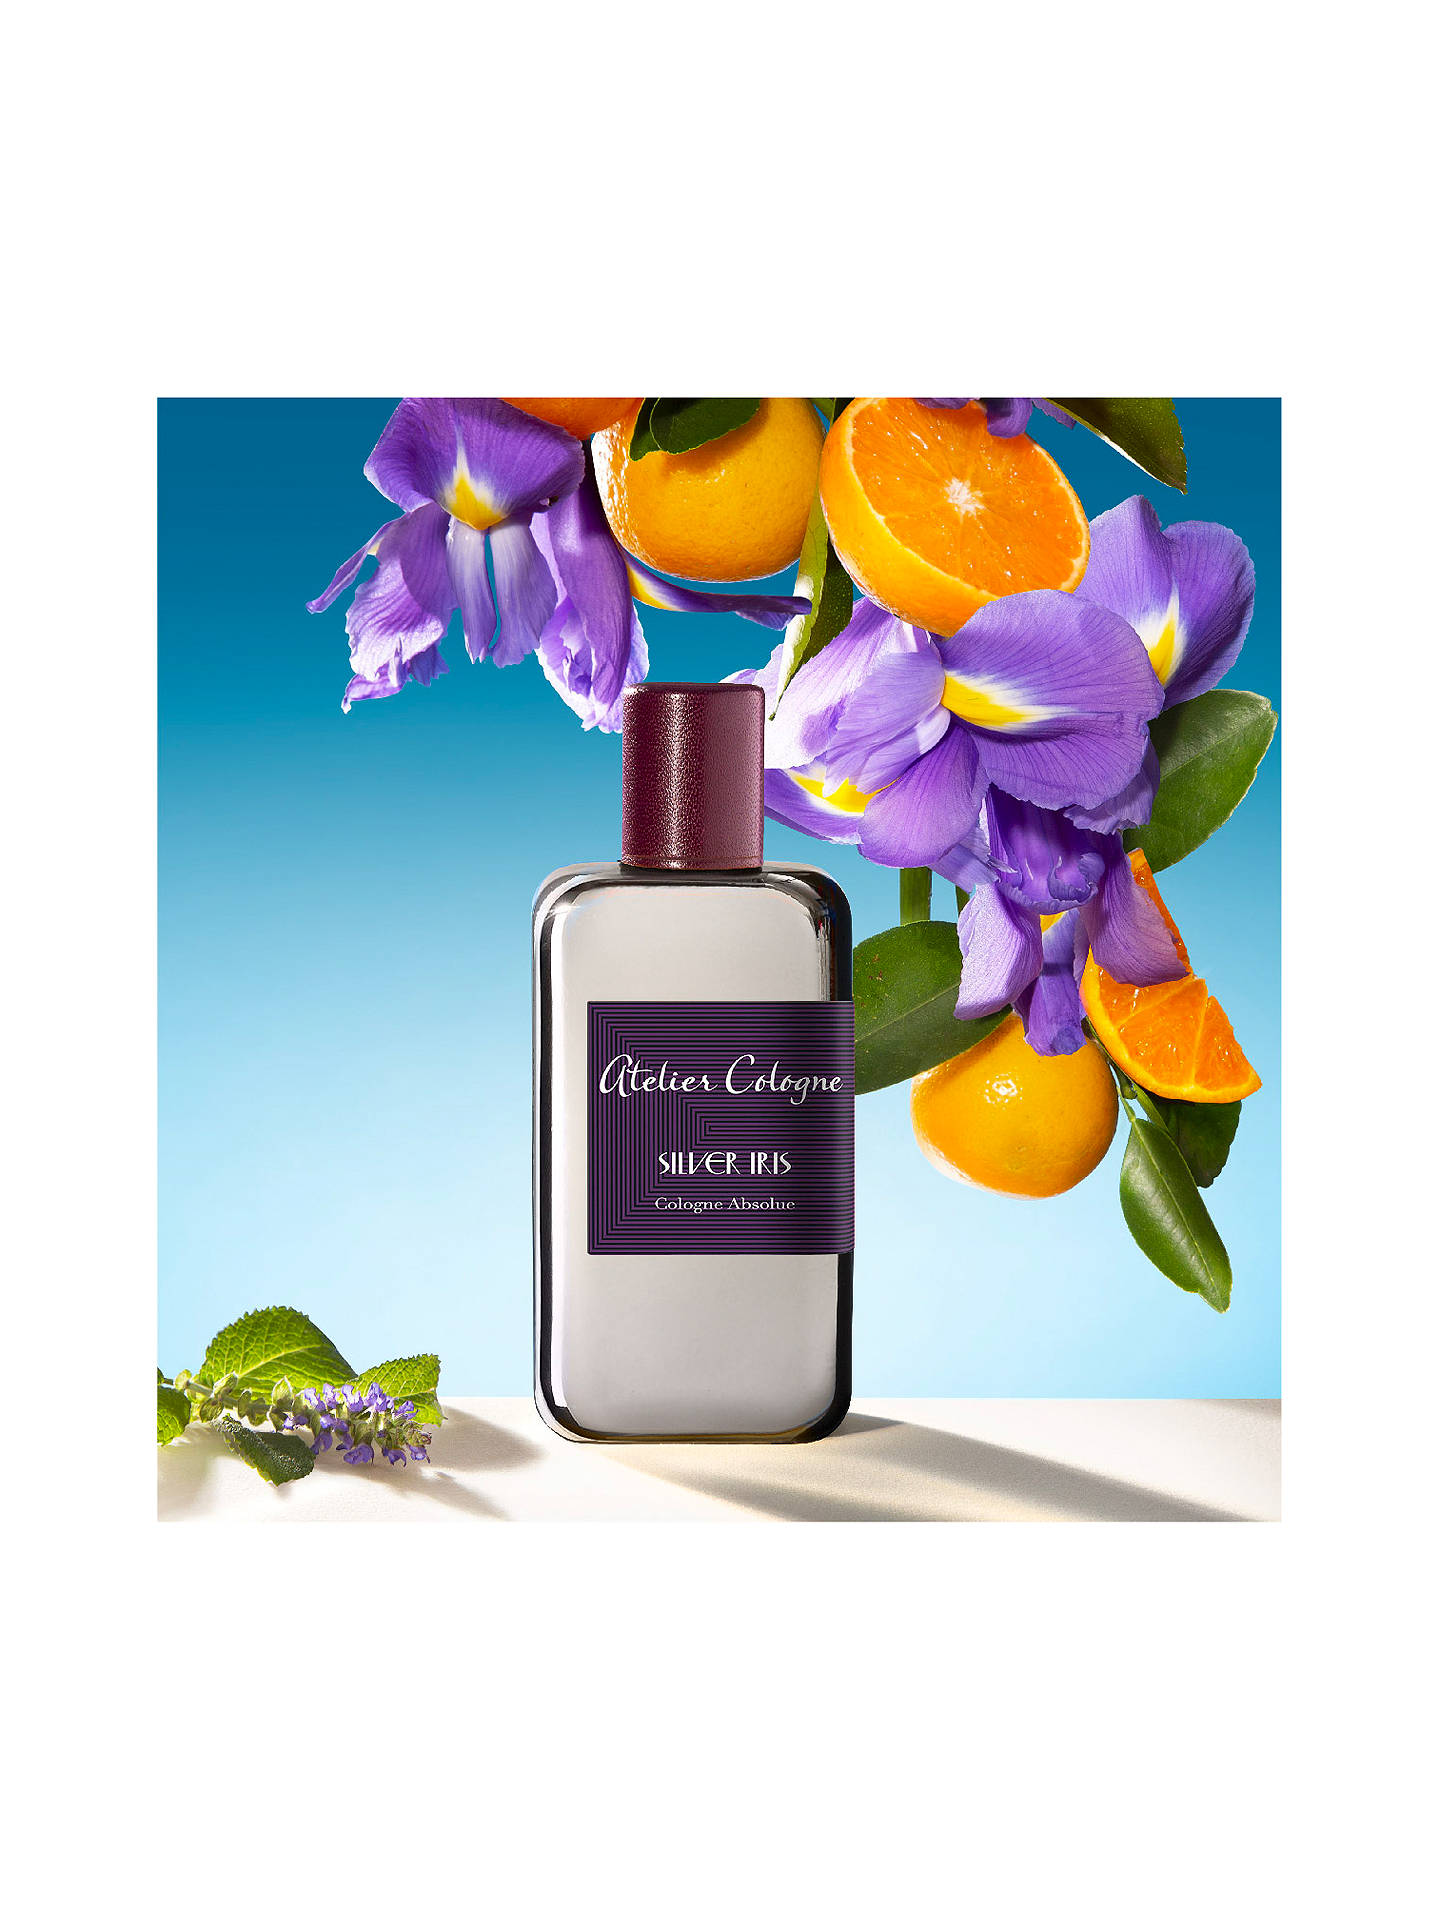 Buy Atelier Cologne Silver Iris Cologne Absolue, 200ml Online at johnlewis.com